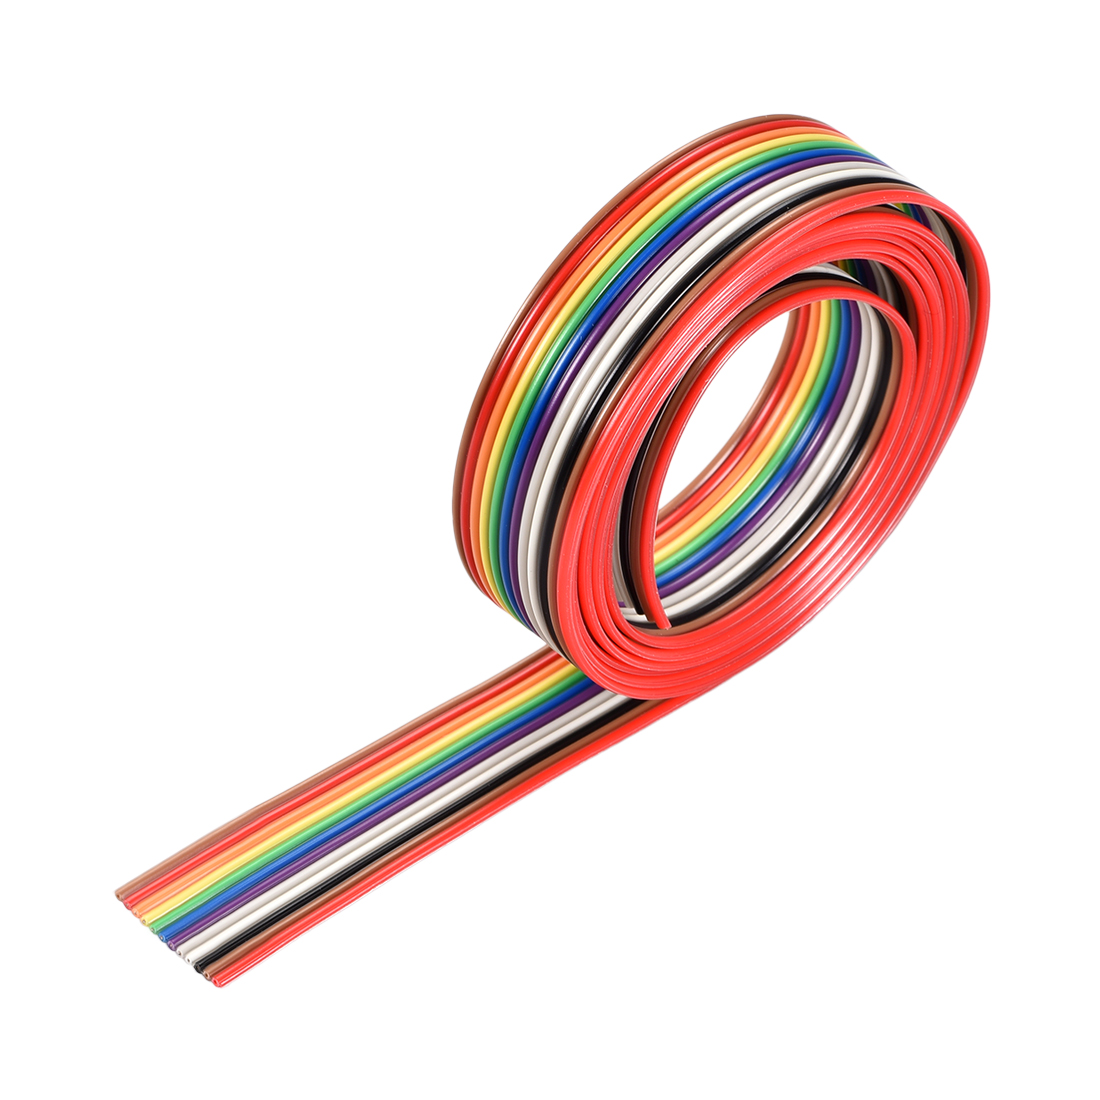 IDC Rainbow Wire Flat Ribbon Cable 12P 1.27mm Pitch 1meter/3.3ft Length